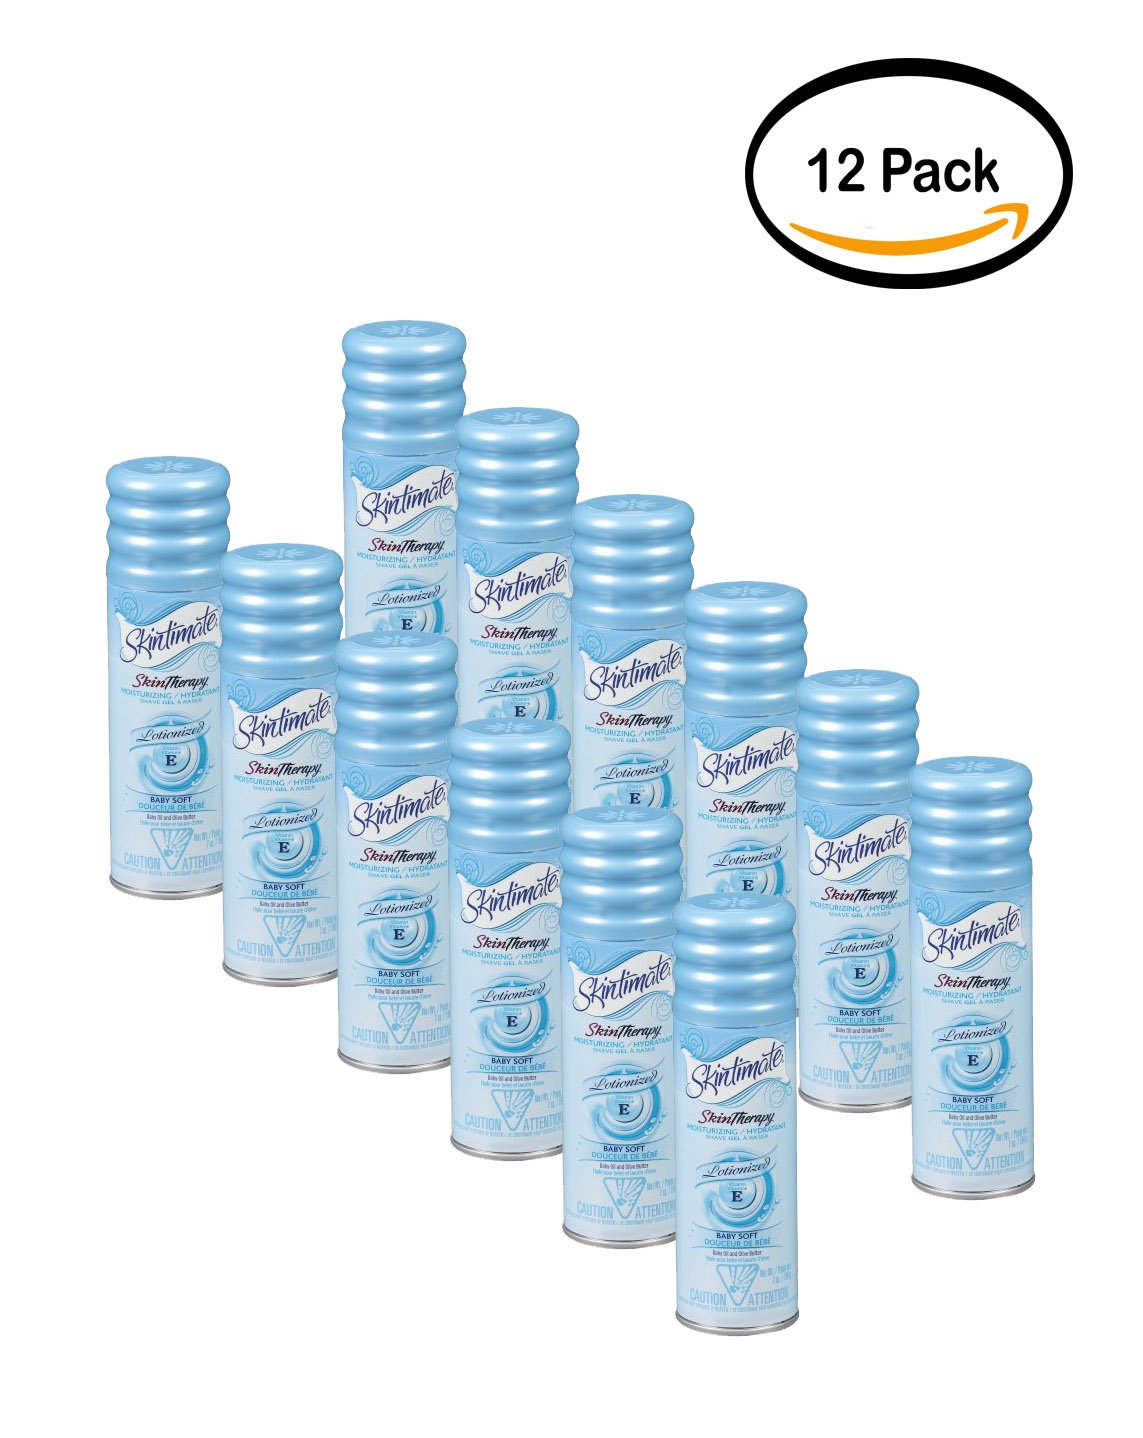 PACK OF 12 - Skintimate Skin Therapy Shave Gel, Baby Soft 7 oz